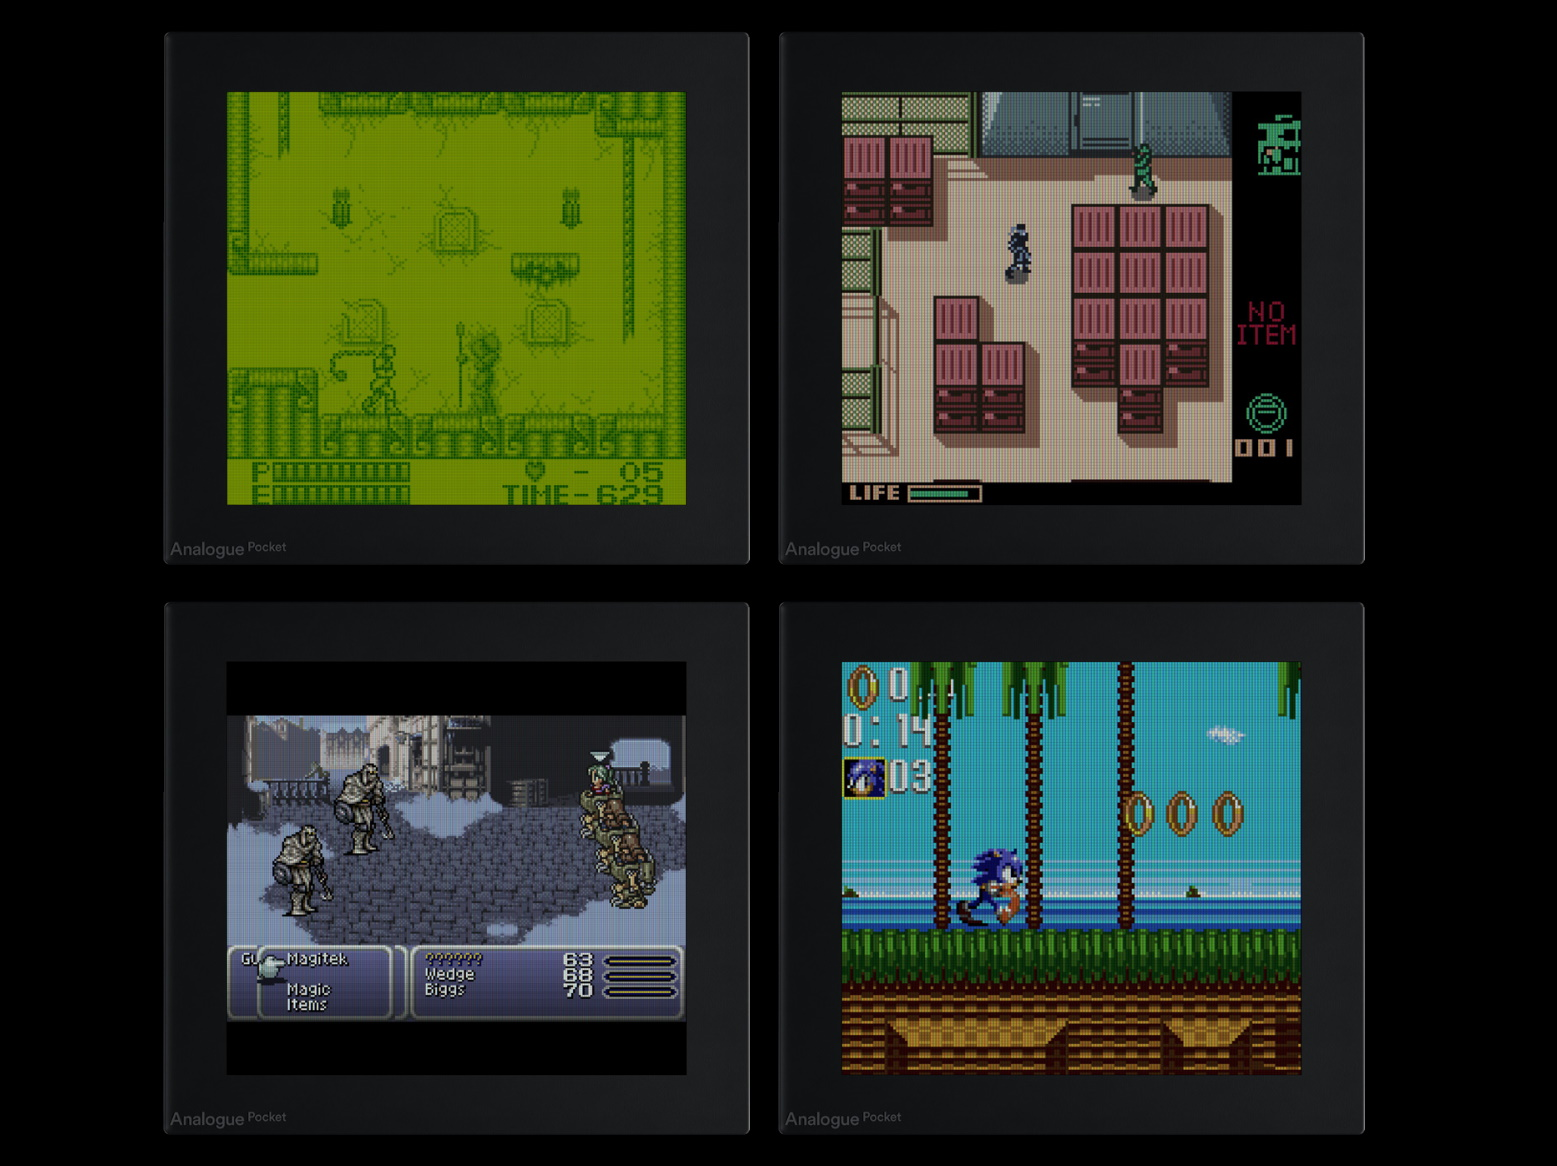 Analogue aspires to build the definitive OS for retro gaming